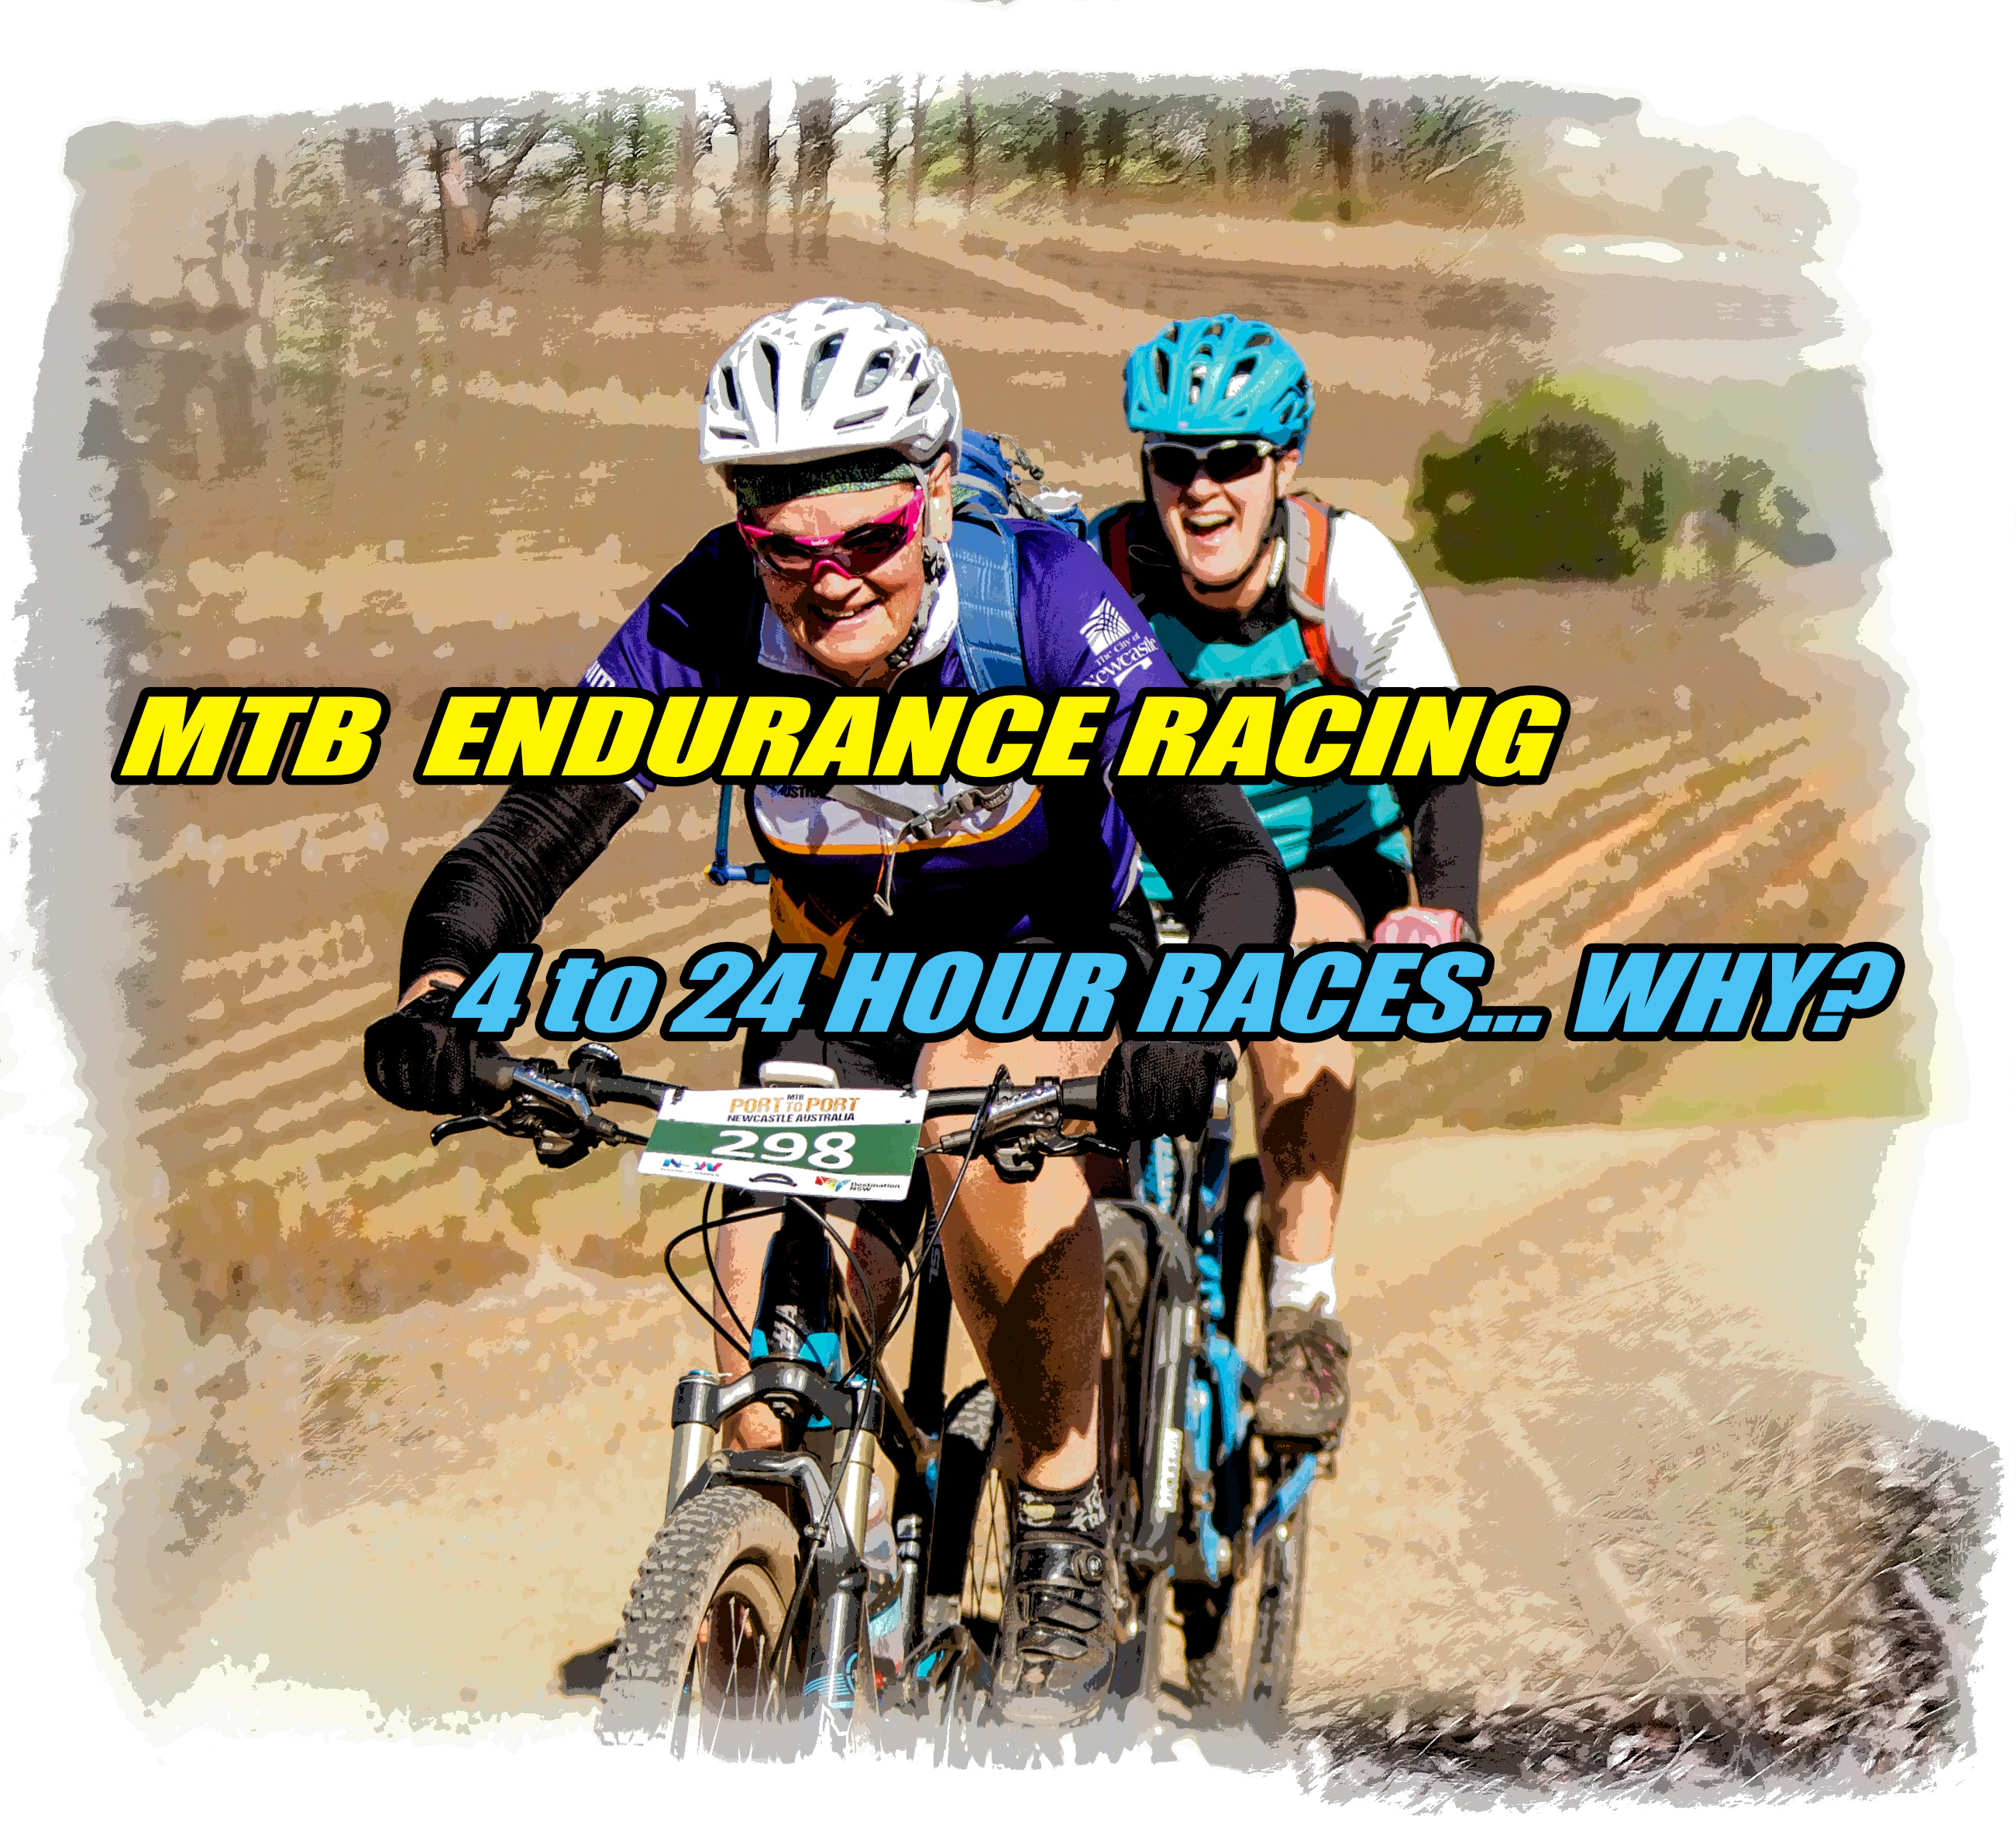 MTB endurance races racing